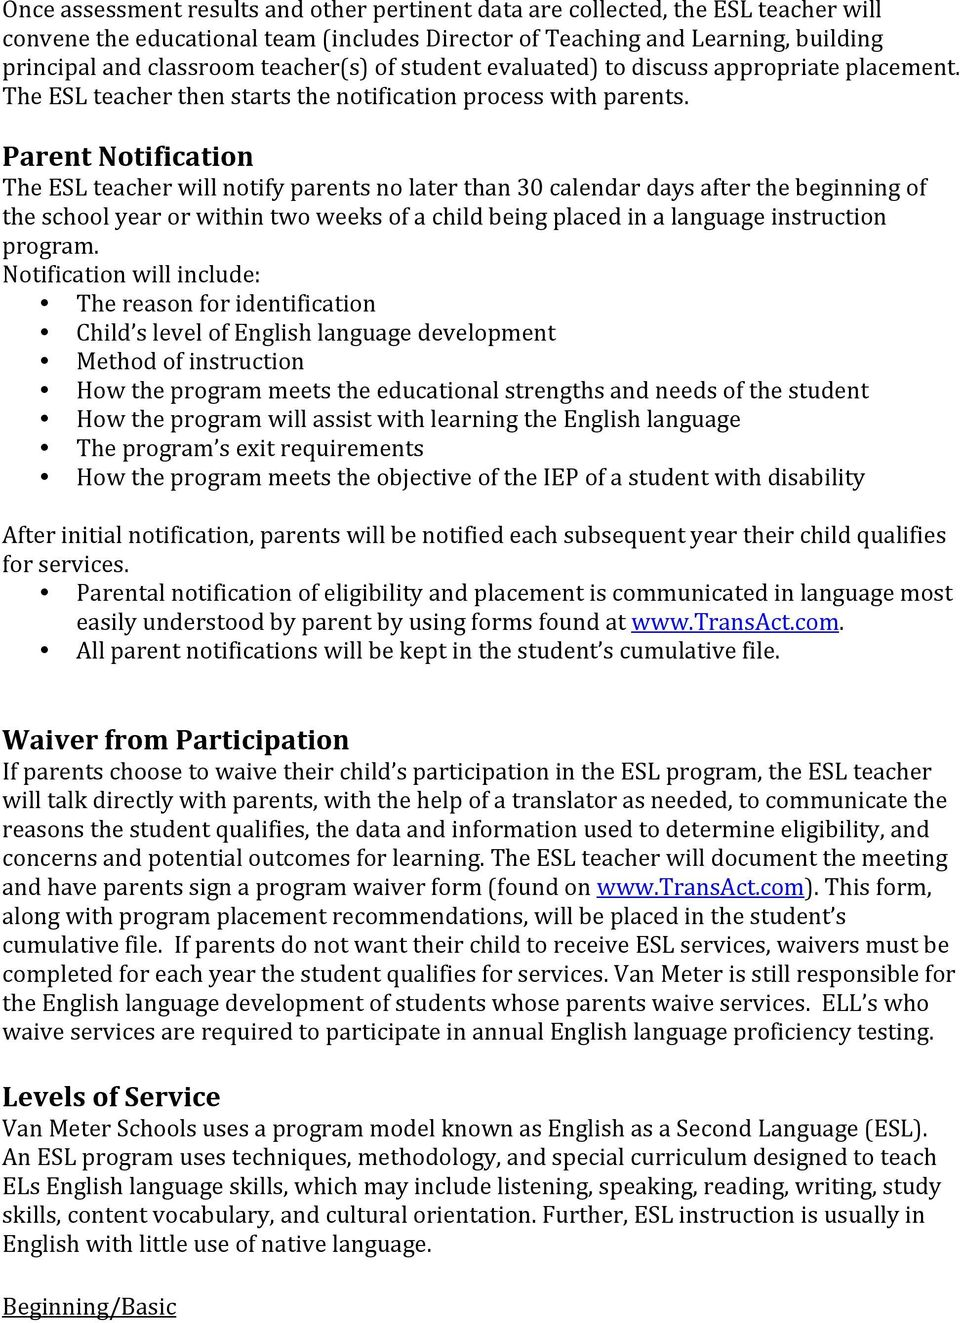 Parent Notification The ESL teacher will notify parents no later than 30 calendar days after the beginning of the school year or within two weeks of a child being placed in a language instruction